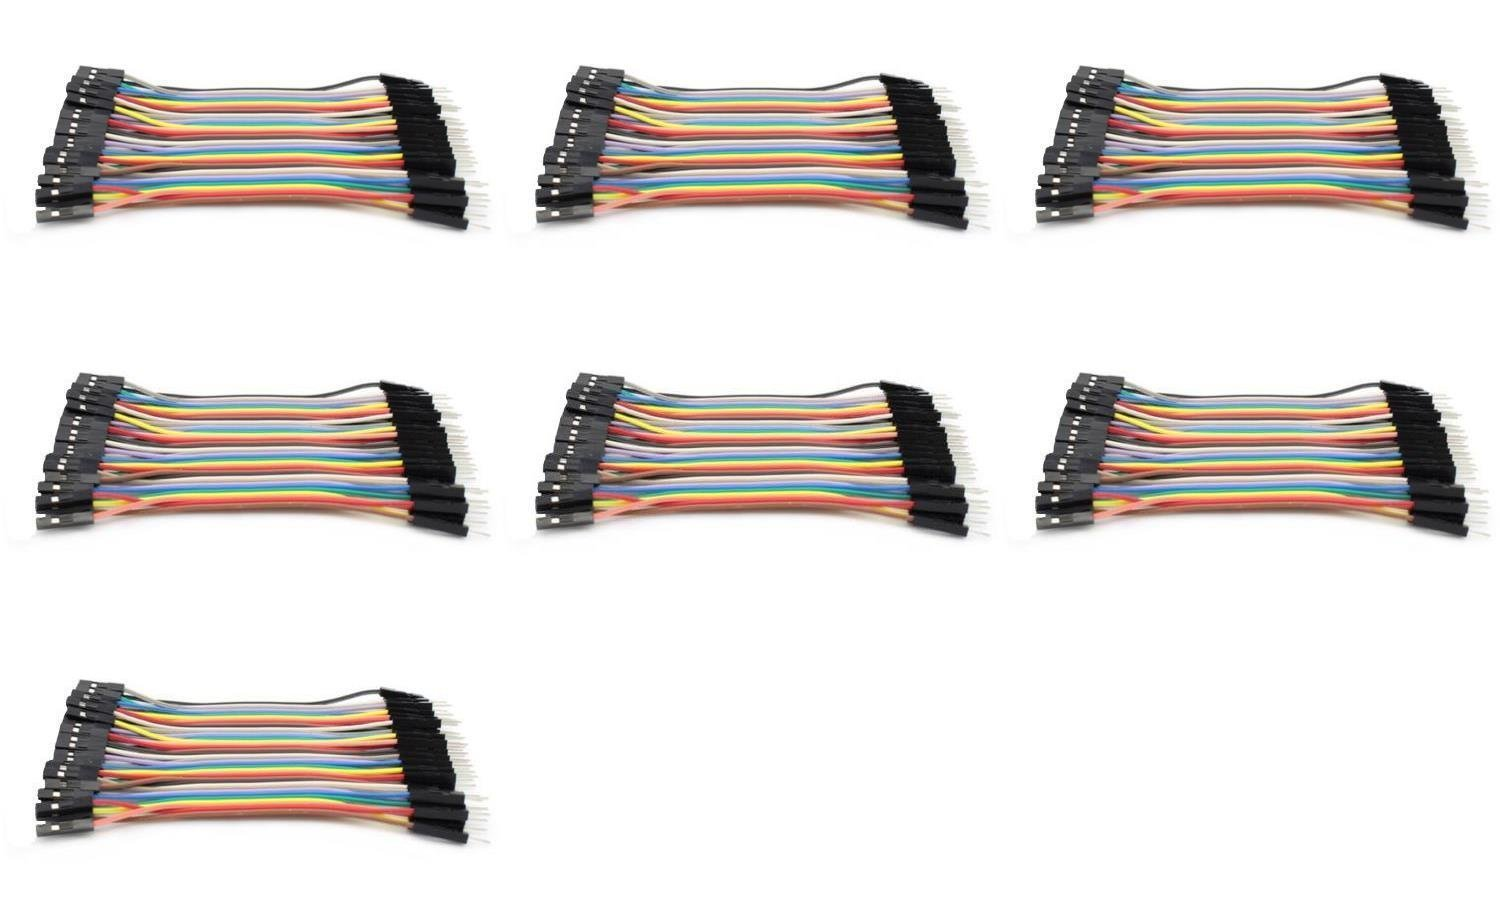 7 x Quantity of Walkera Runner 250 DIY Dupont 40 Qty 10cm 2.54mm 1pin Female to Male Jumper Wire Cables - FAST FROM Orlando, Florida USA!